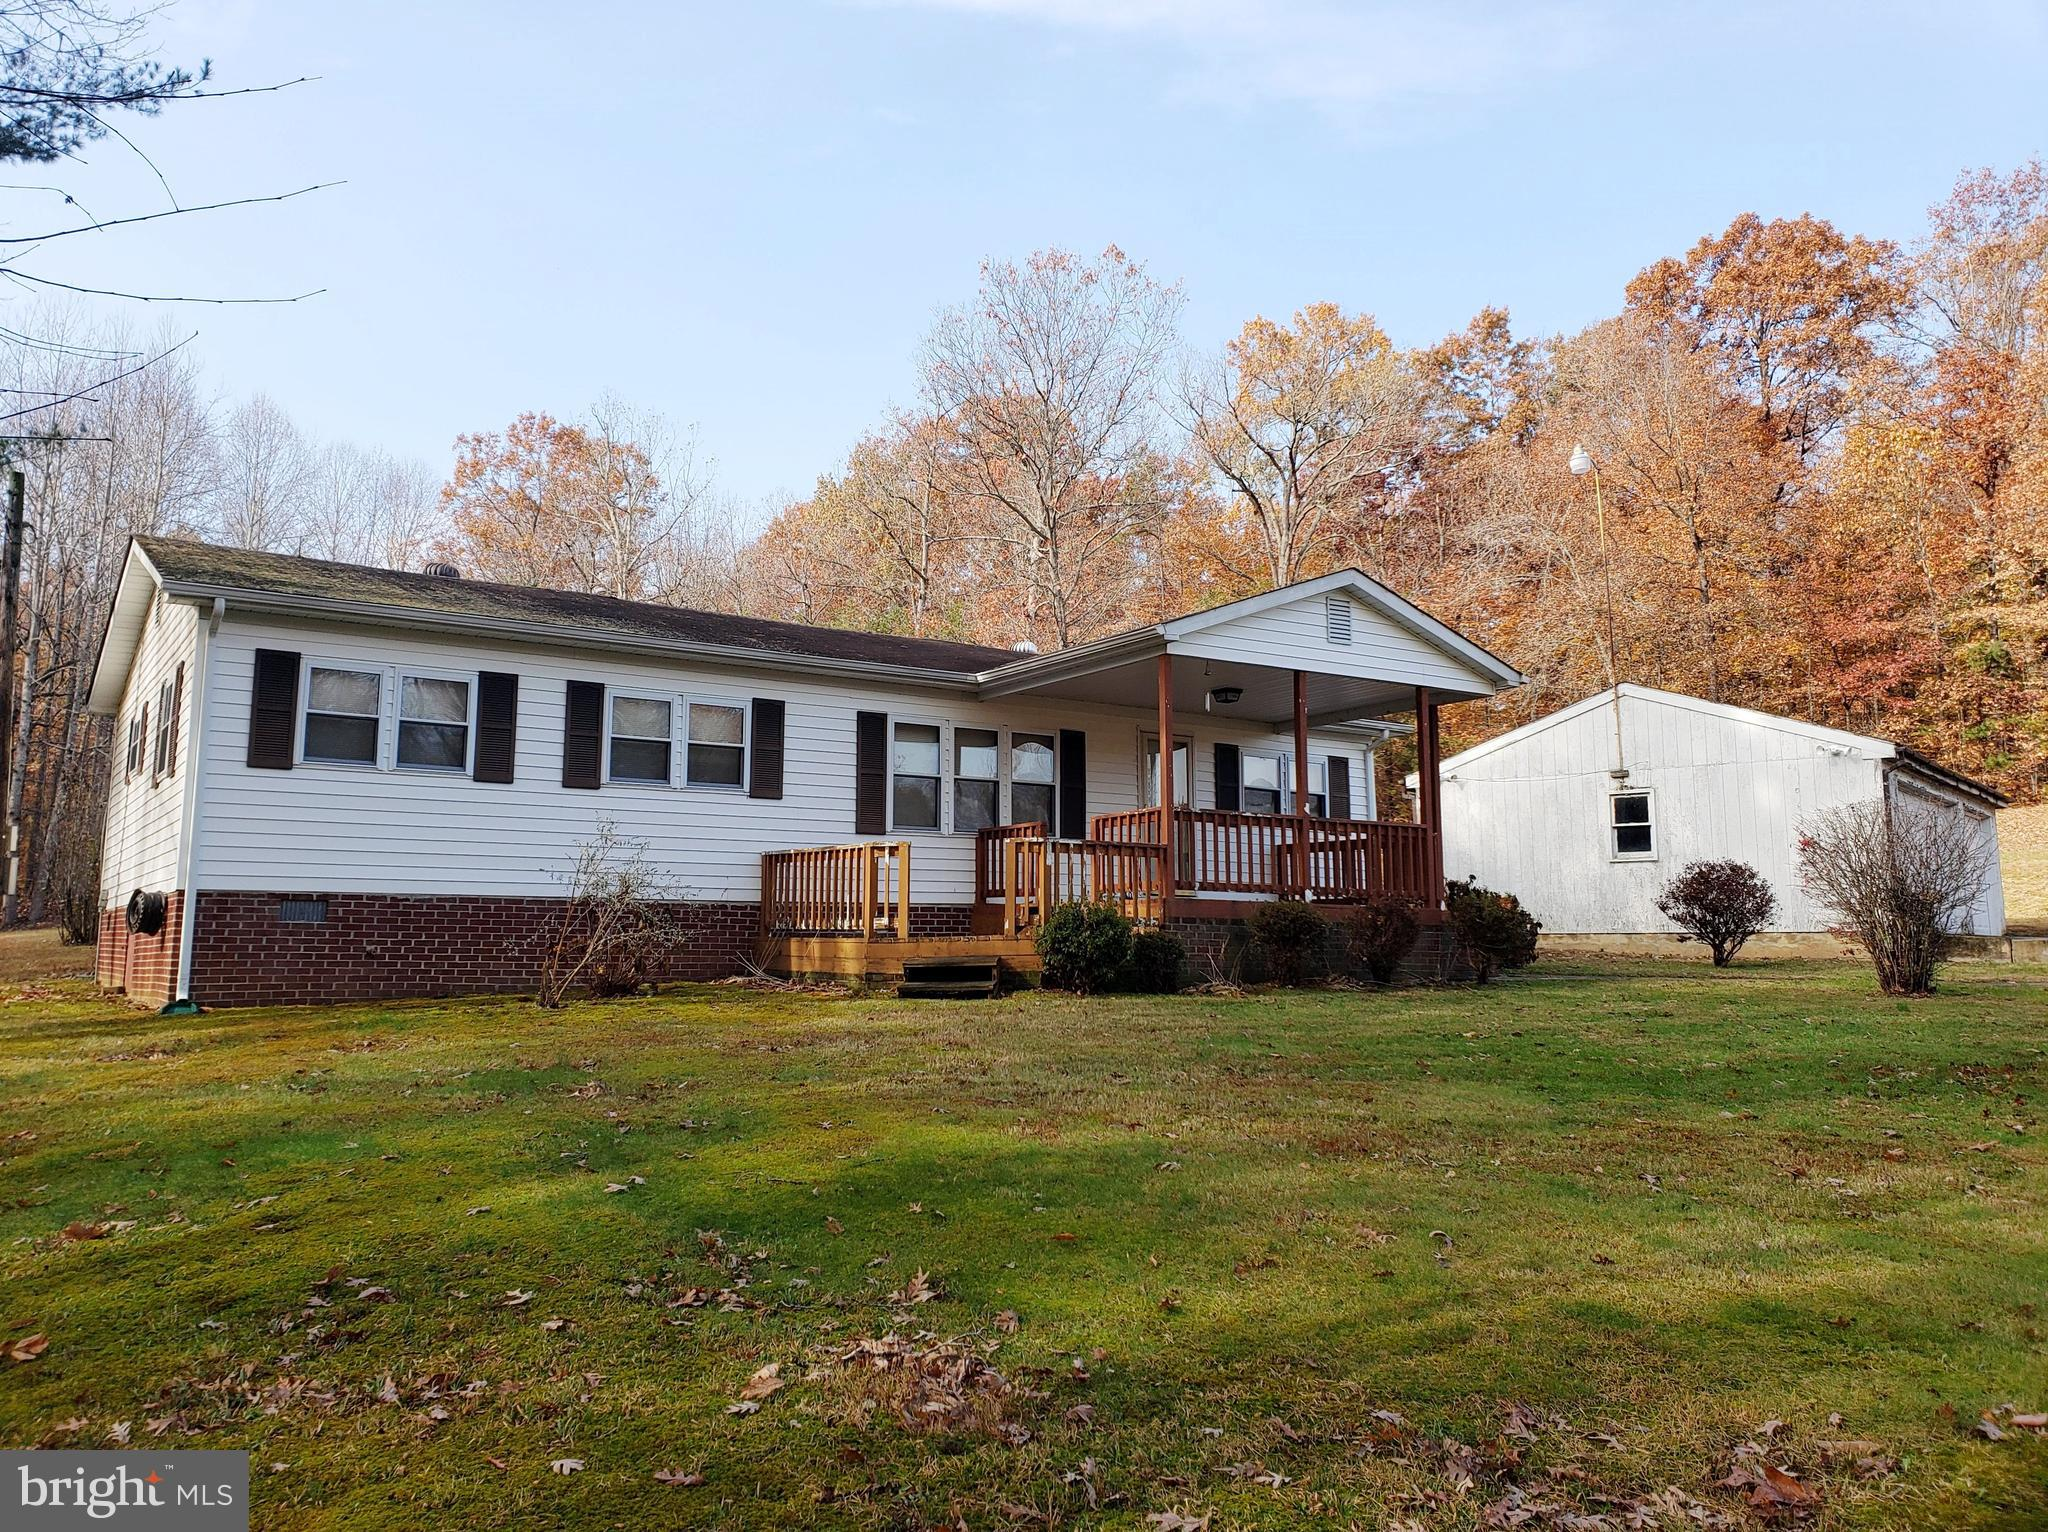 1737 S BLUE RIDGE TURNPIKE, SOMERSET, VA 22972